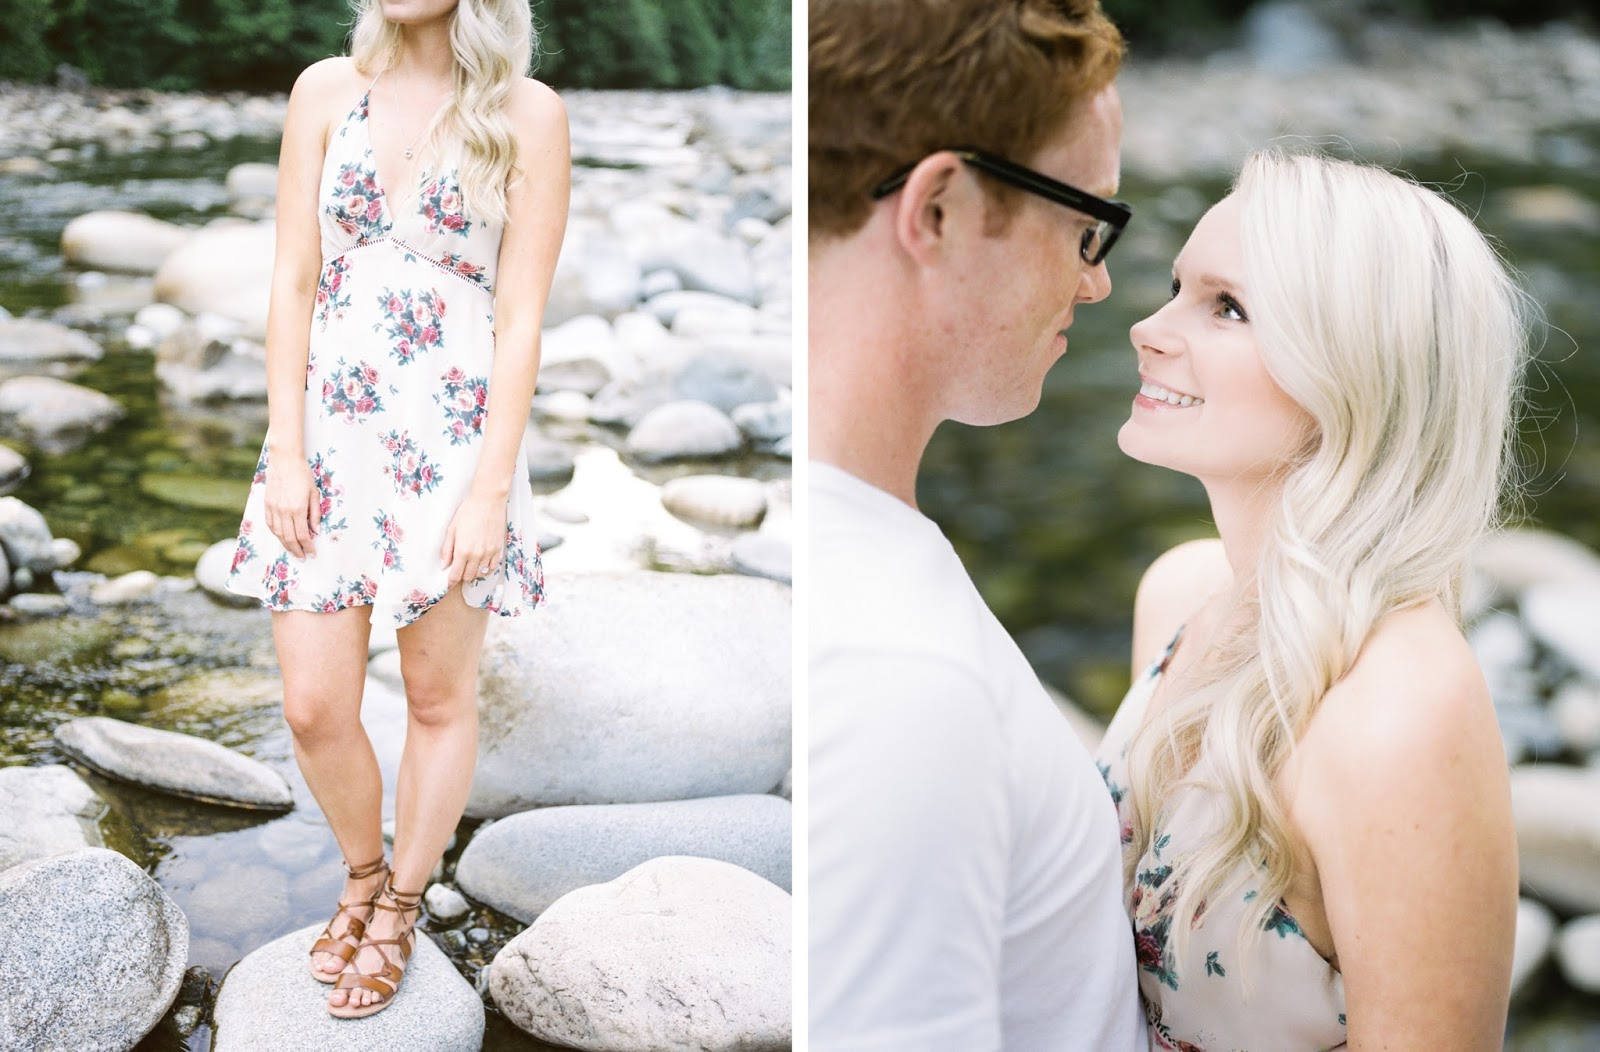 pretty dress from forever 21 for a Vancouver engagement photoshoot in summer, down by the creek